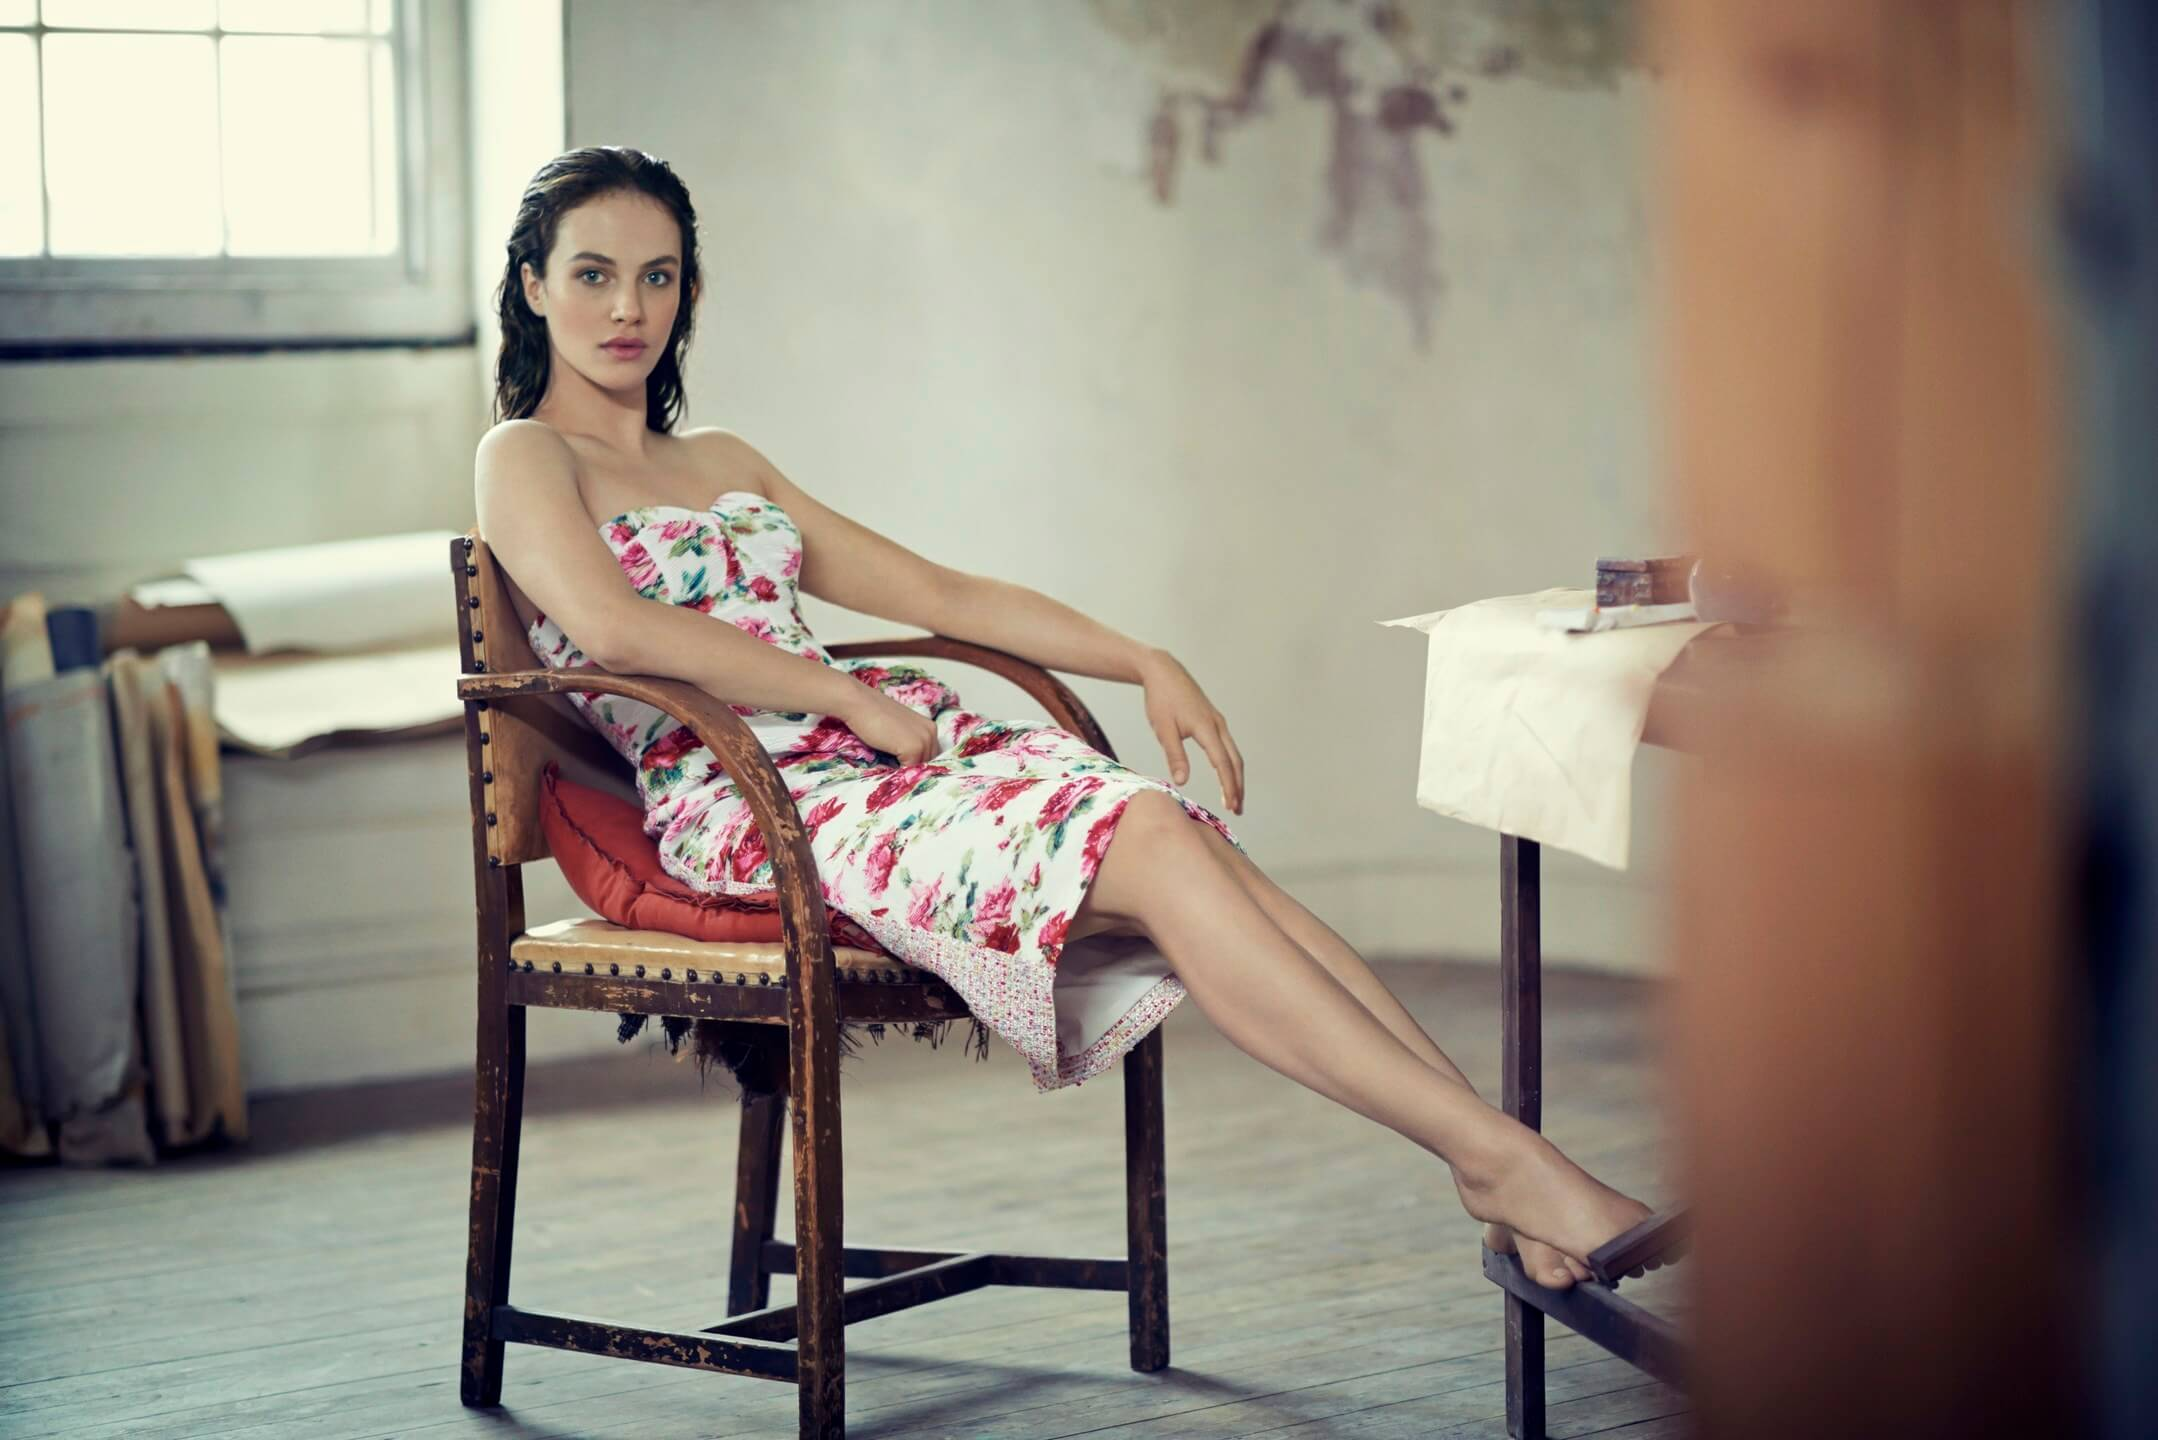 Jessica-Brown-Findlay-Feet-1487273